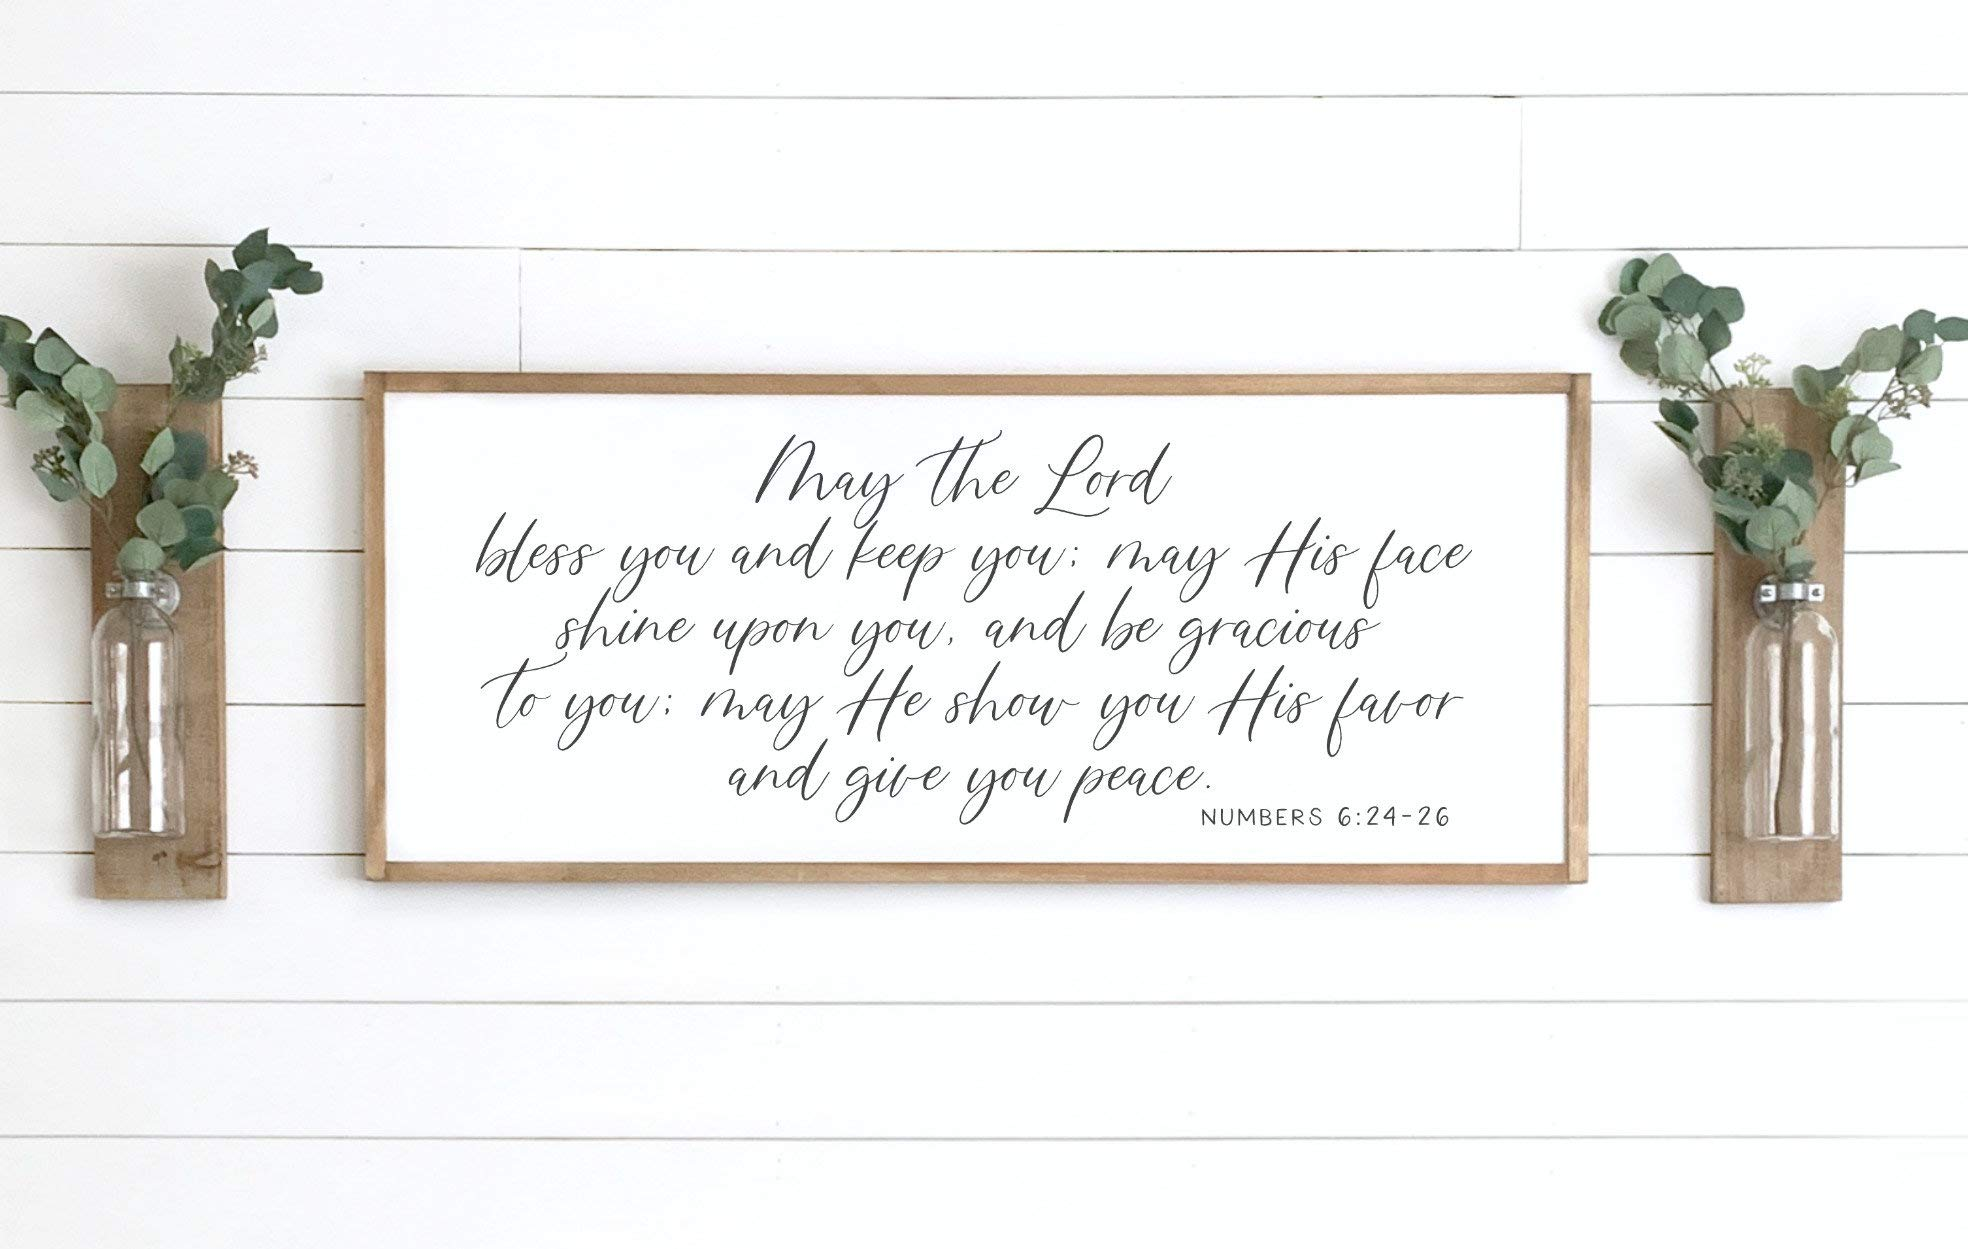 29x29 FREE SHIPPING Scripture 23x23 Farmhouse Wood Sign 35x35 May the Lord bless you and keep you 12x12